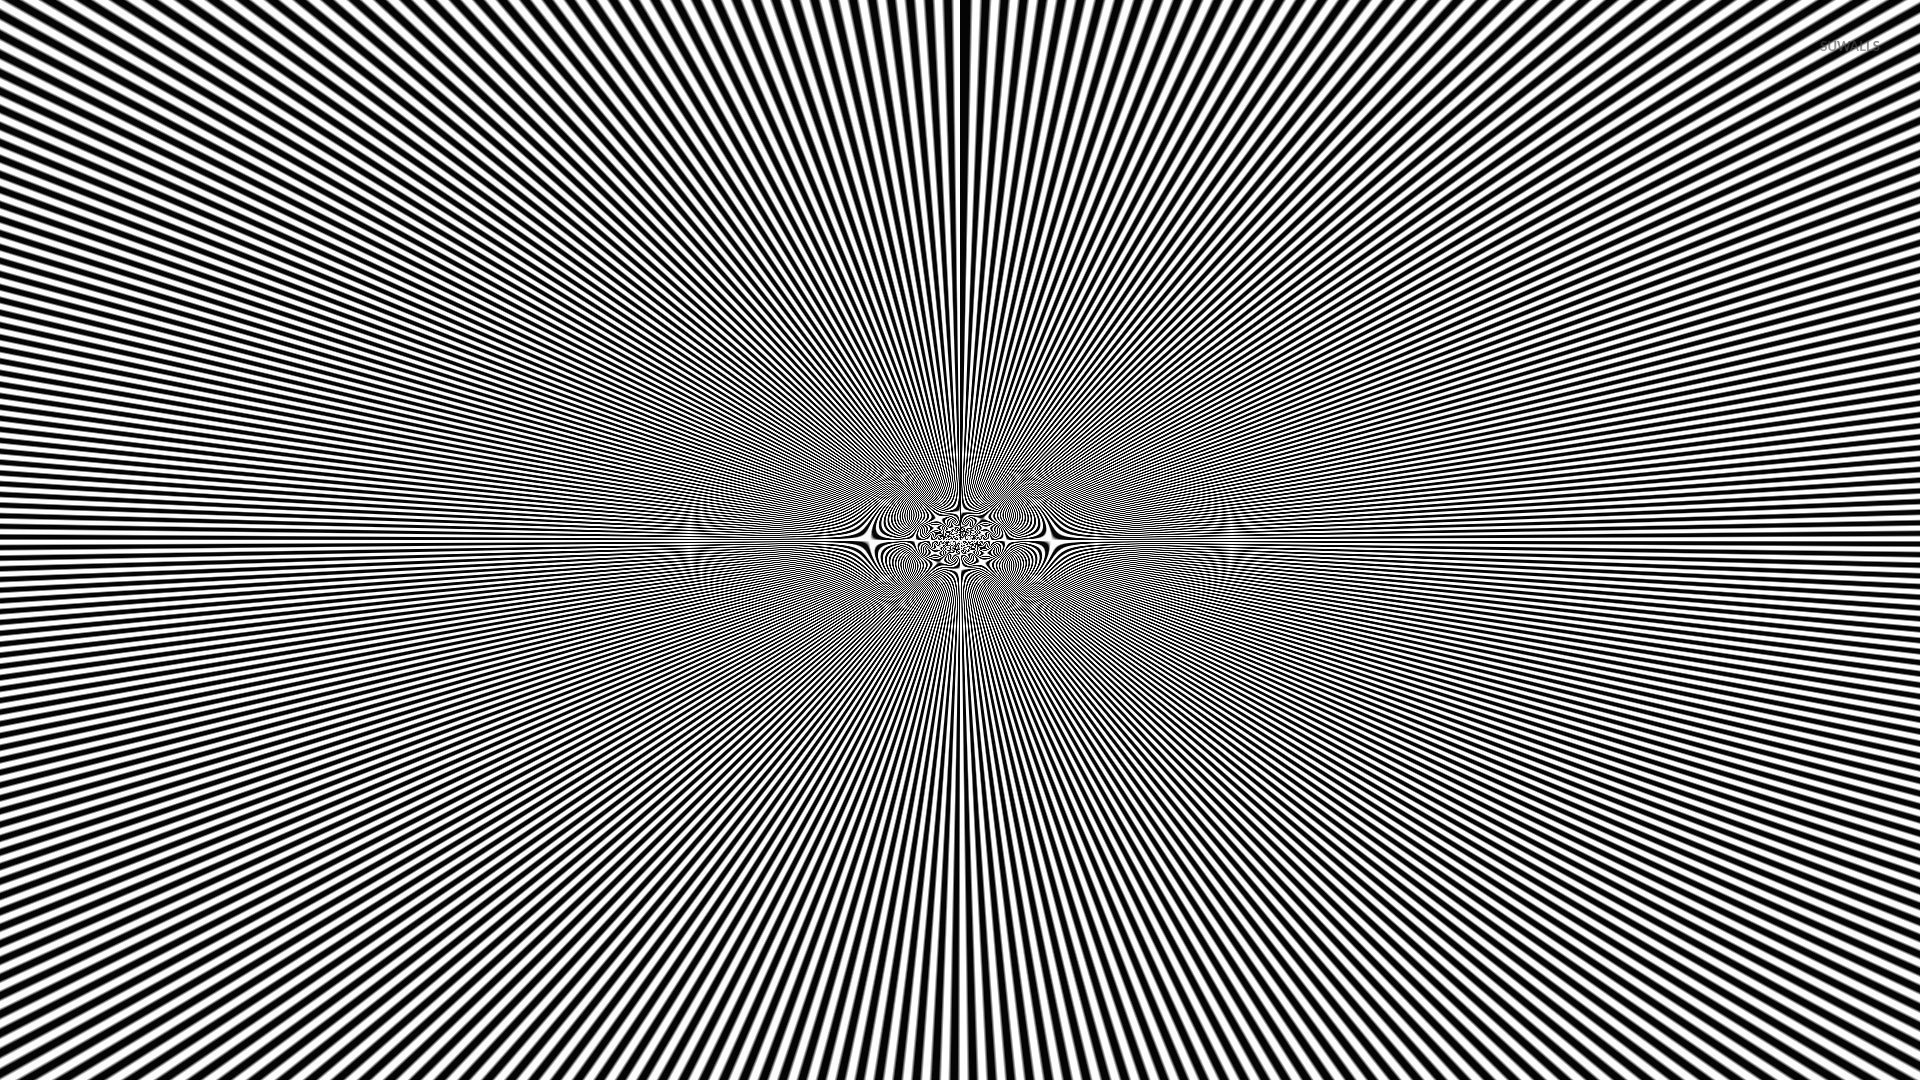 Optical Illusion 2 Wallpaper Vector Wallpapers 25103